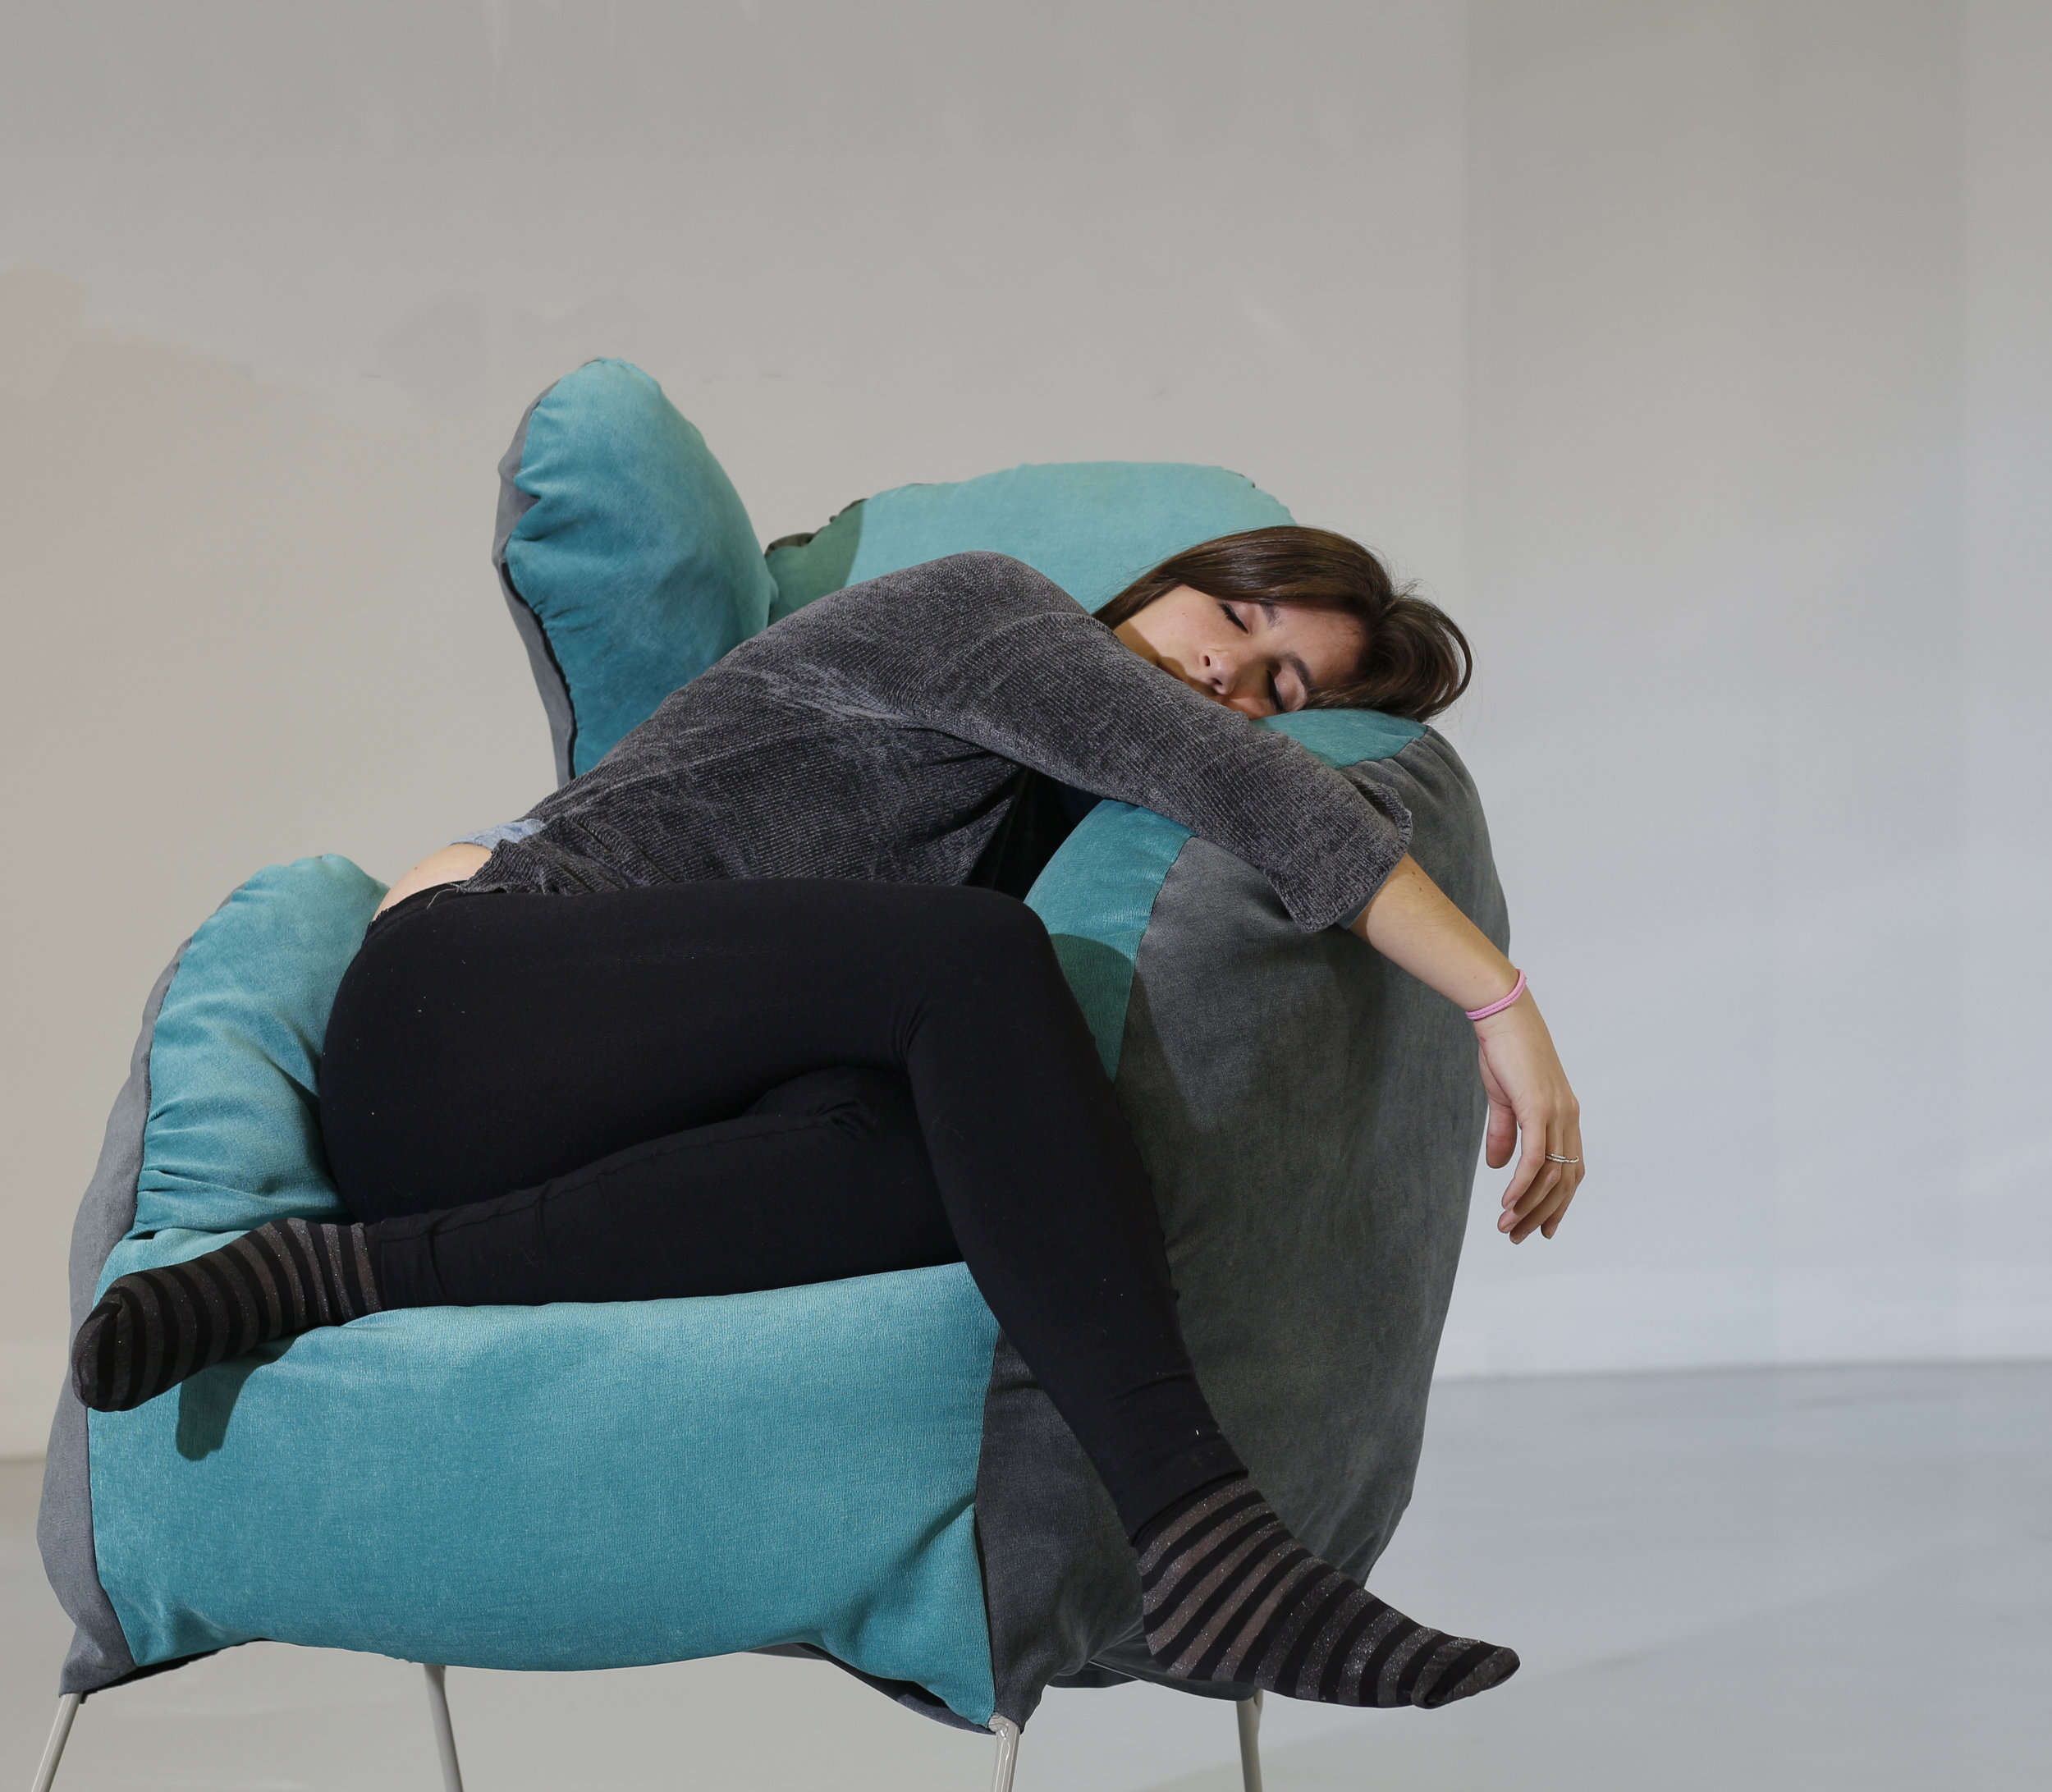 feelings - This armchair simulates the feeling of a temporary hug, and we're not just referring to physical sensations. Every hug comes with a scent that forms part of it. Sulley emanates those scents that remind us of a hug. To achieve this, it features a pouch in the top part so people may bask in the scent and the sensation concurrently. Several natural fragrances are available for users to choose from.